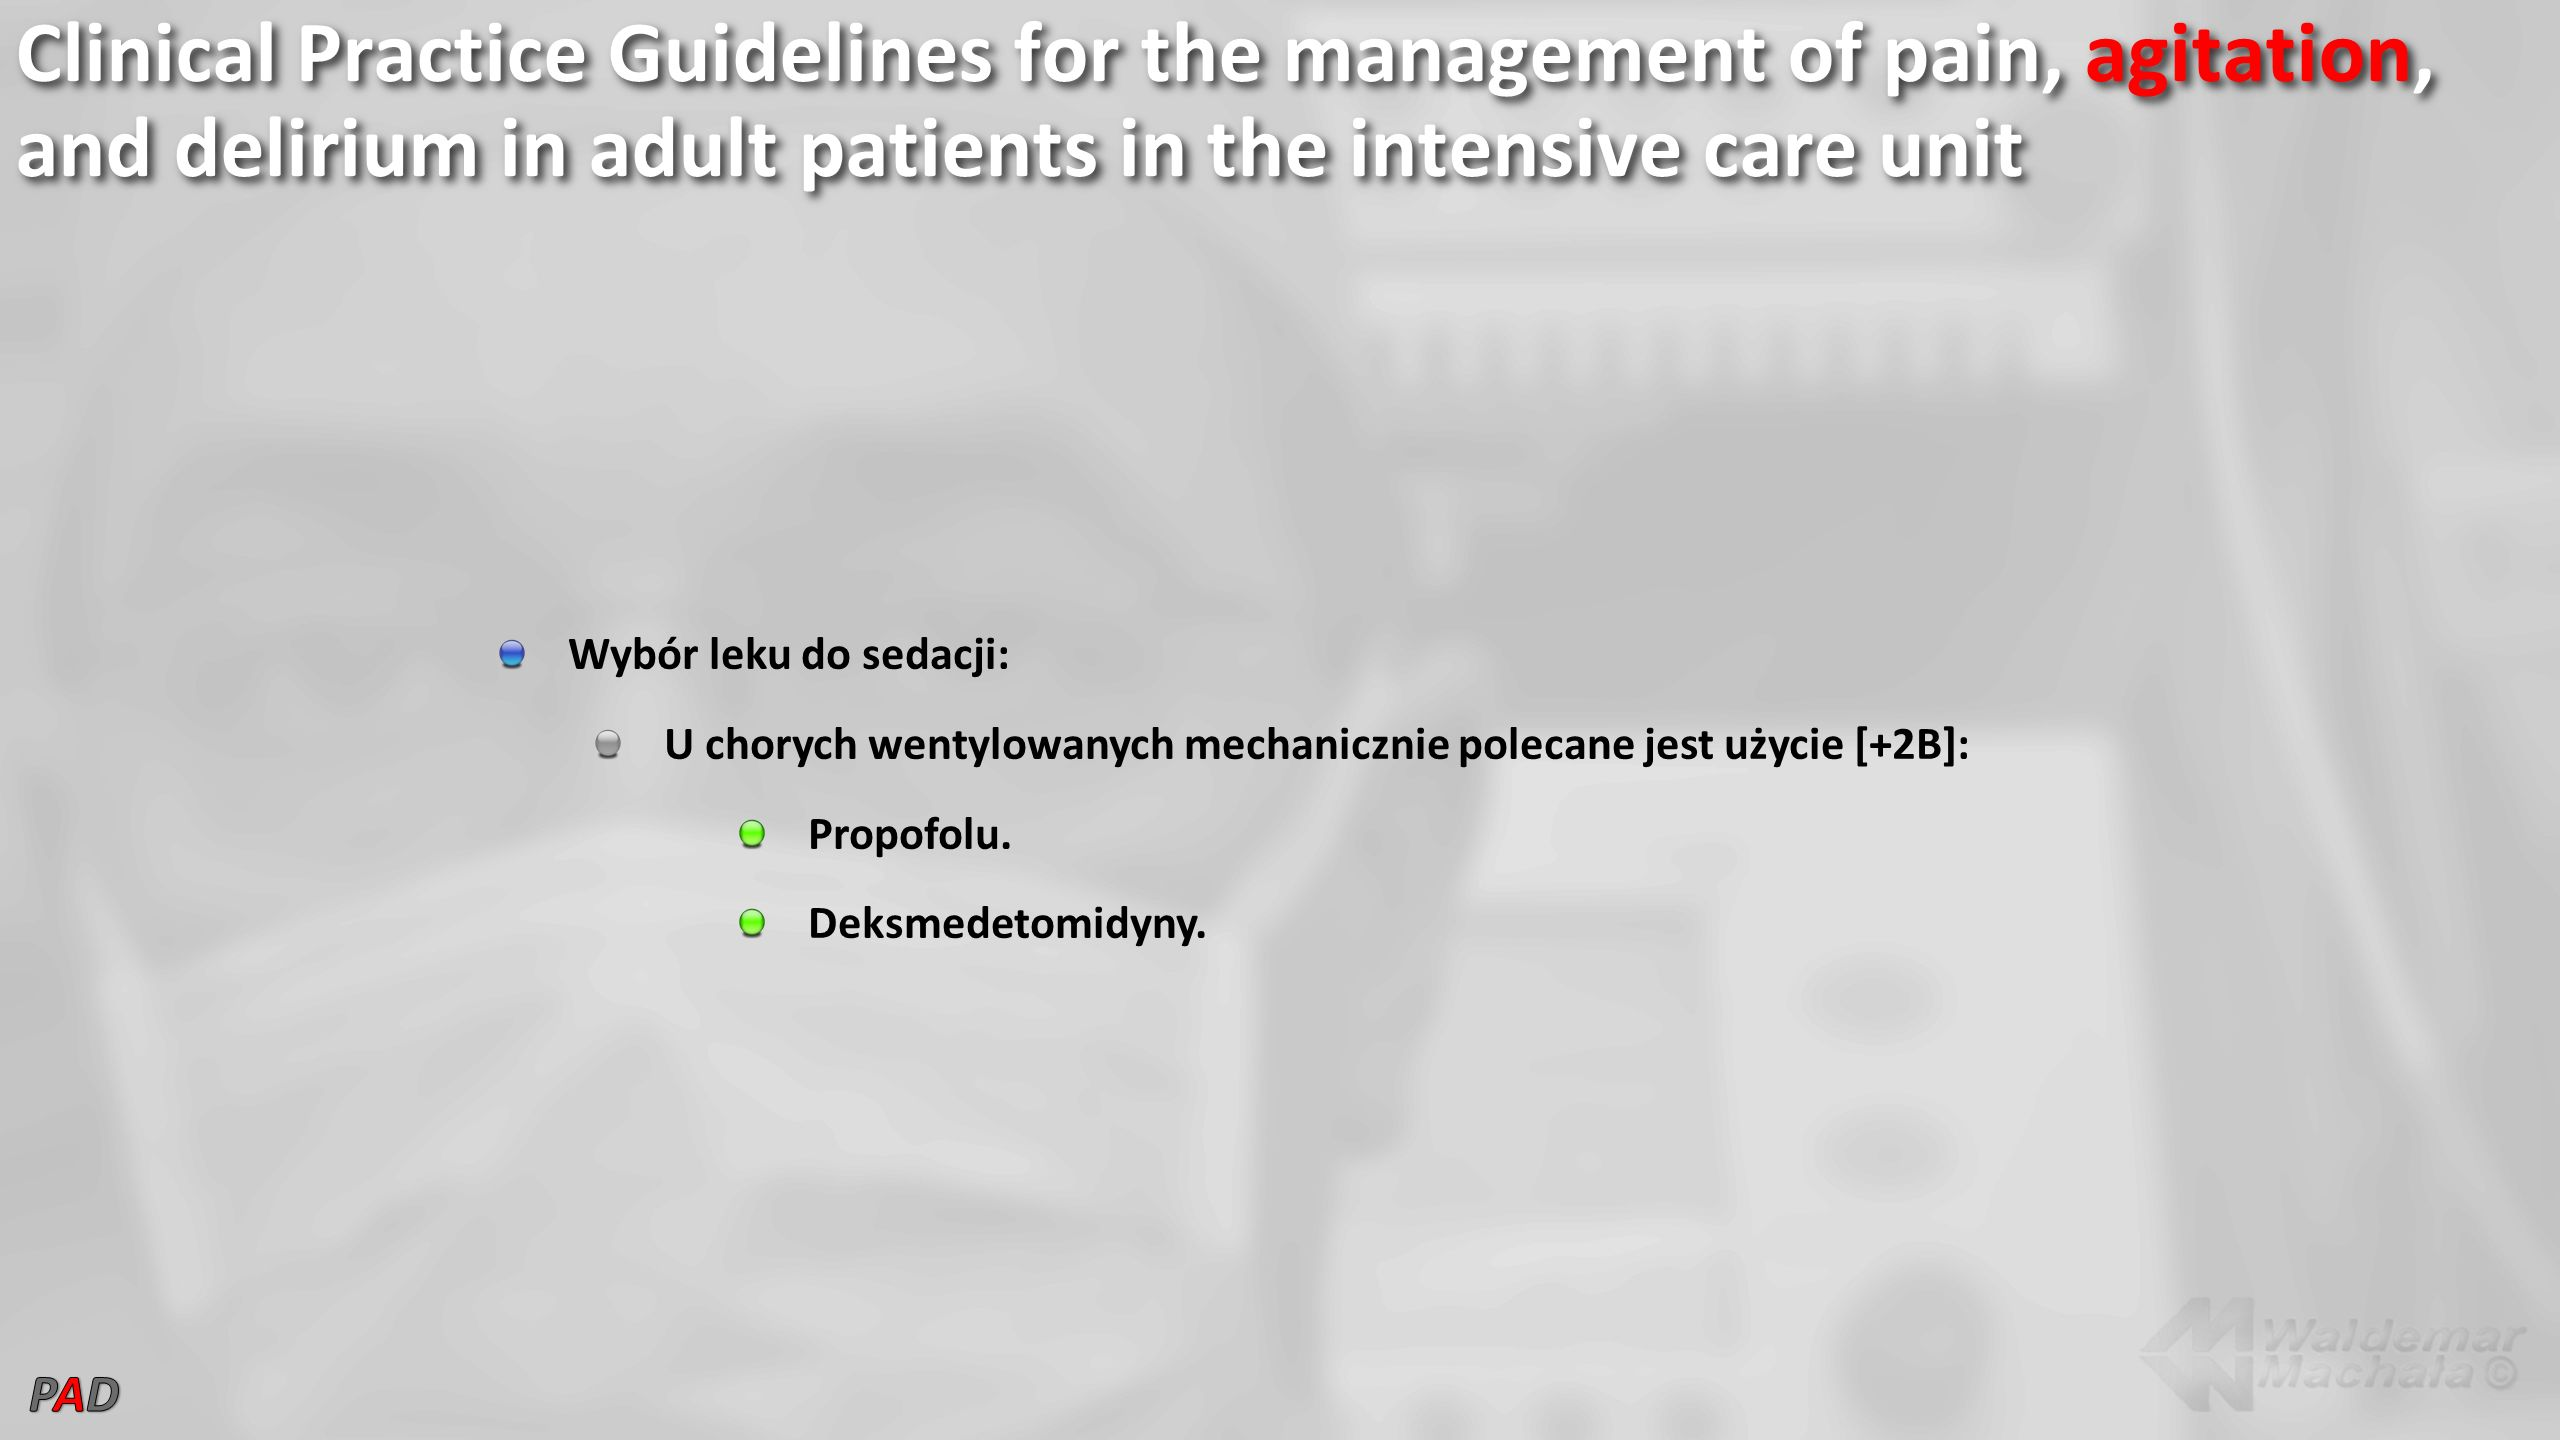 Clinical Practice Guidelines for the management of pain, agitation, and delirium in adult patients in the intensive care unit Wybór leku do sedacji: U